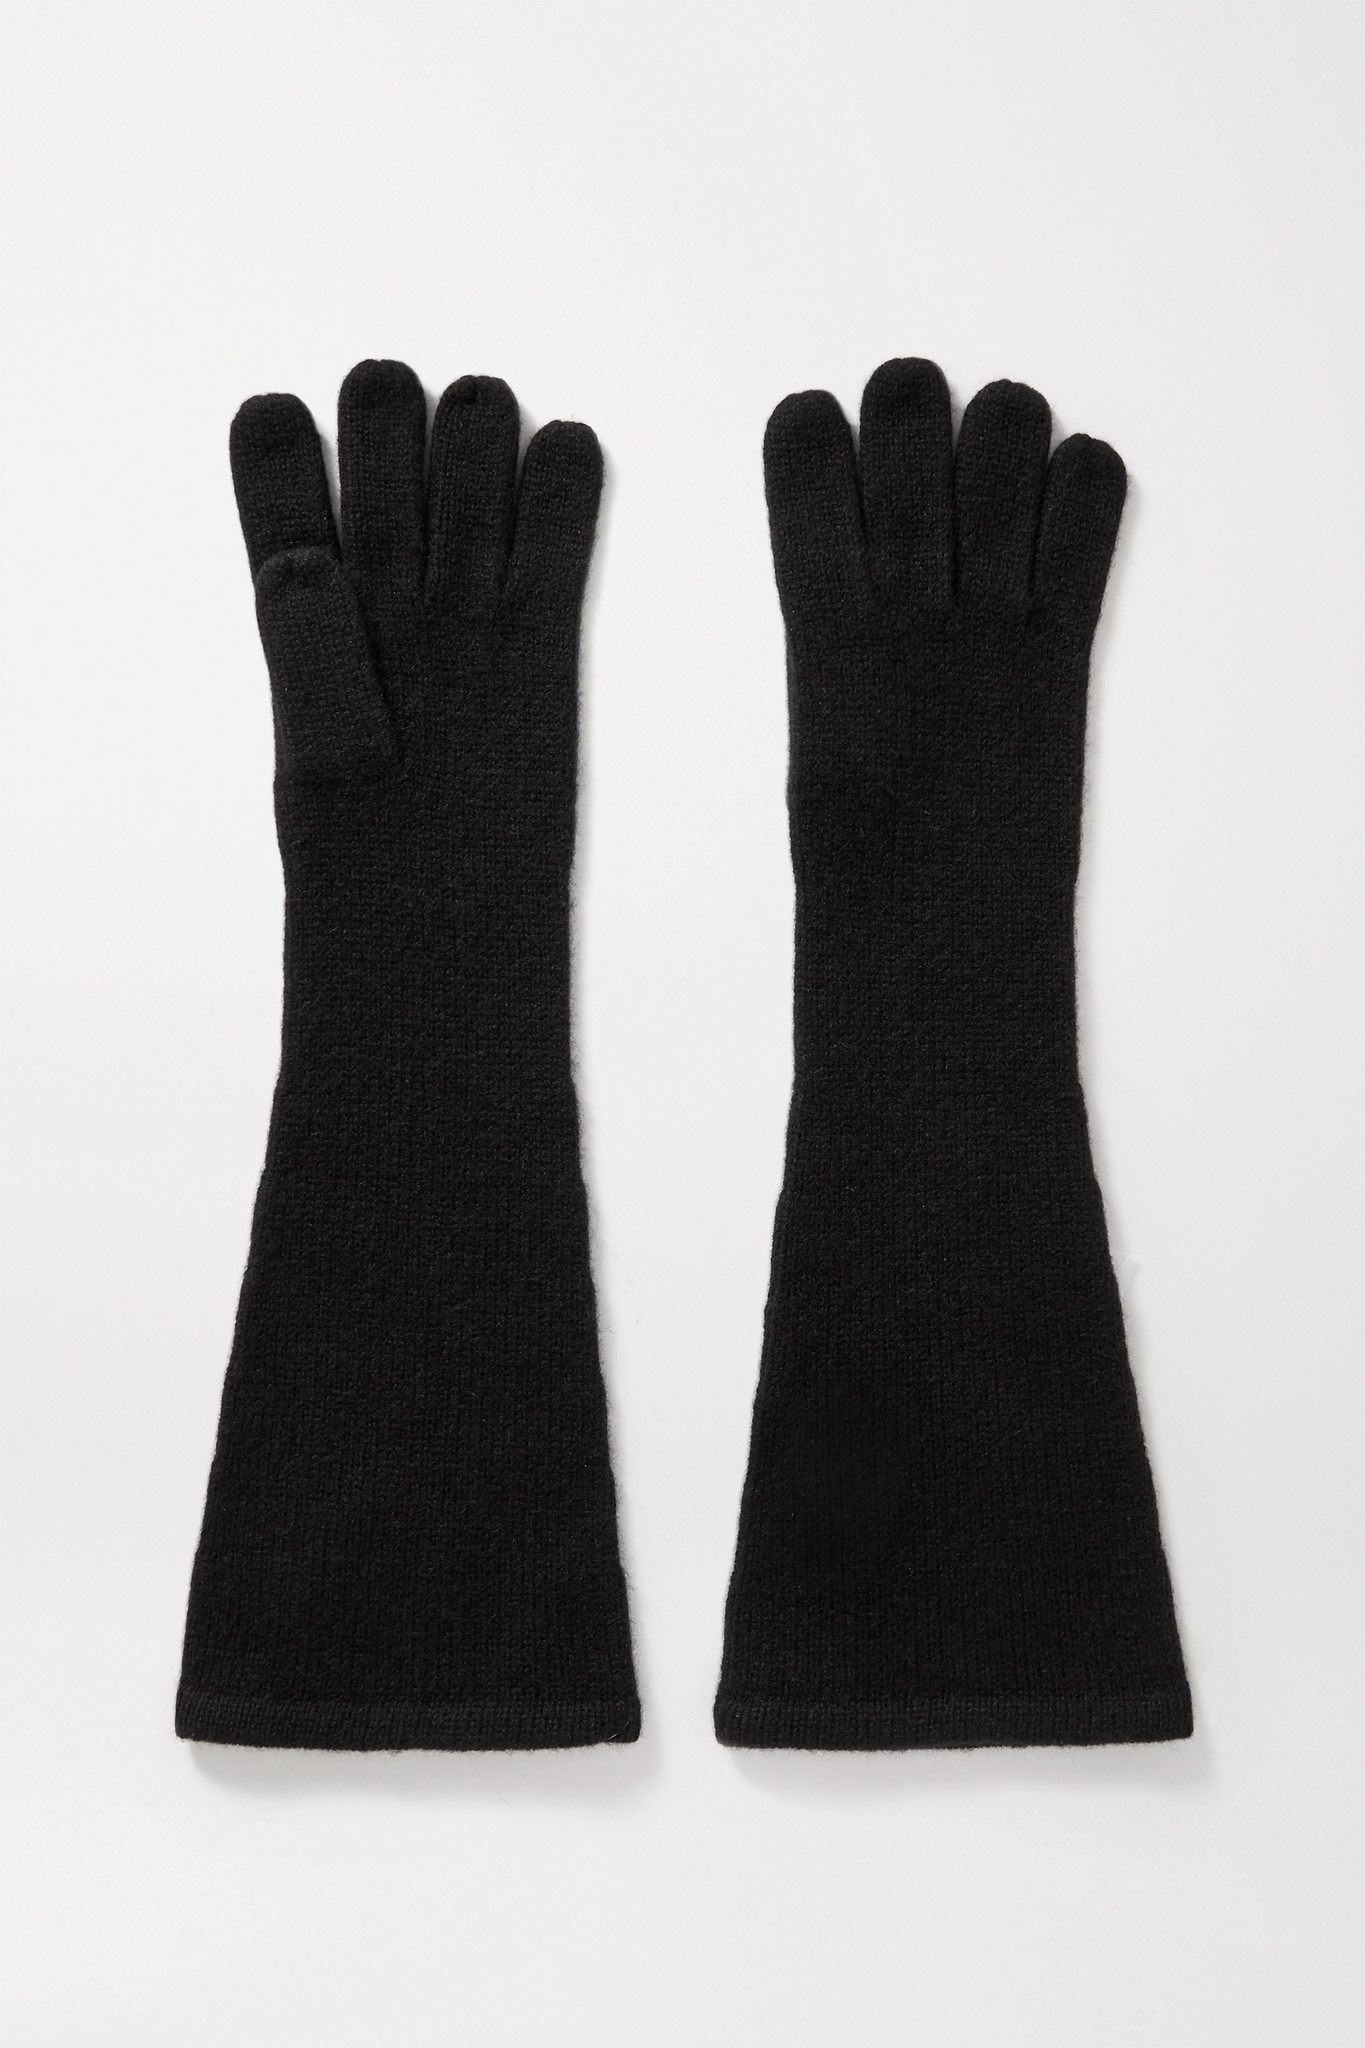 TOTÊME - Cashmere Gloves - Black - M/L